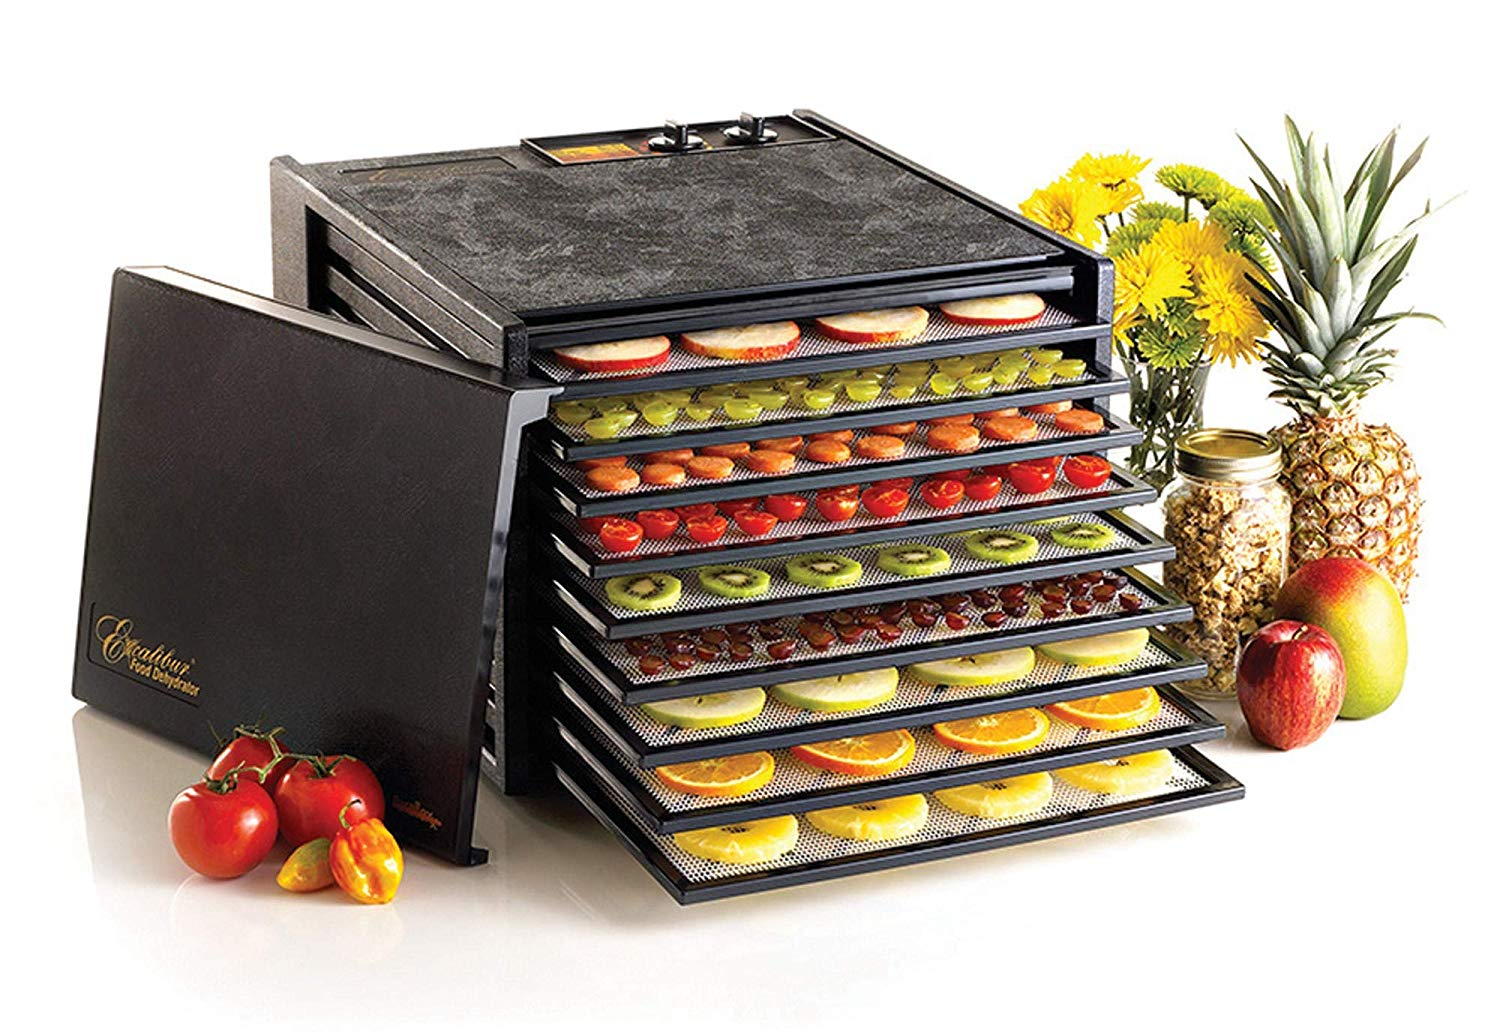 Excalibur 3926TB Nine Tray Electric Food Dehydrator